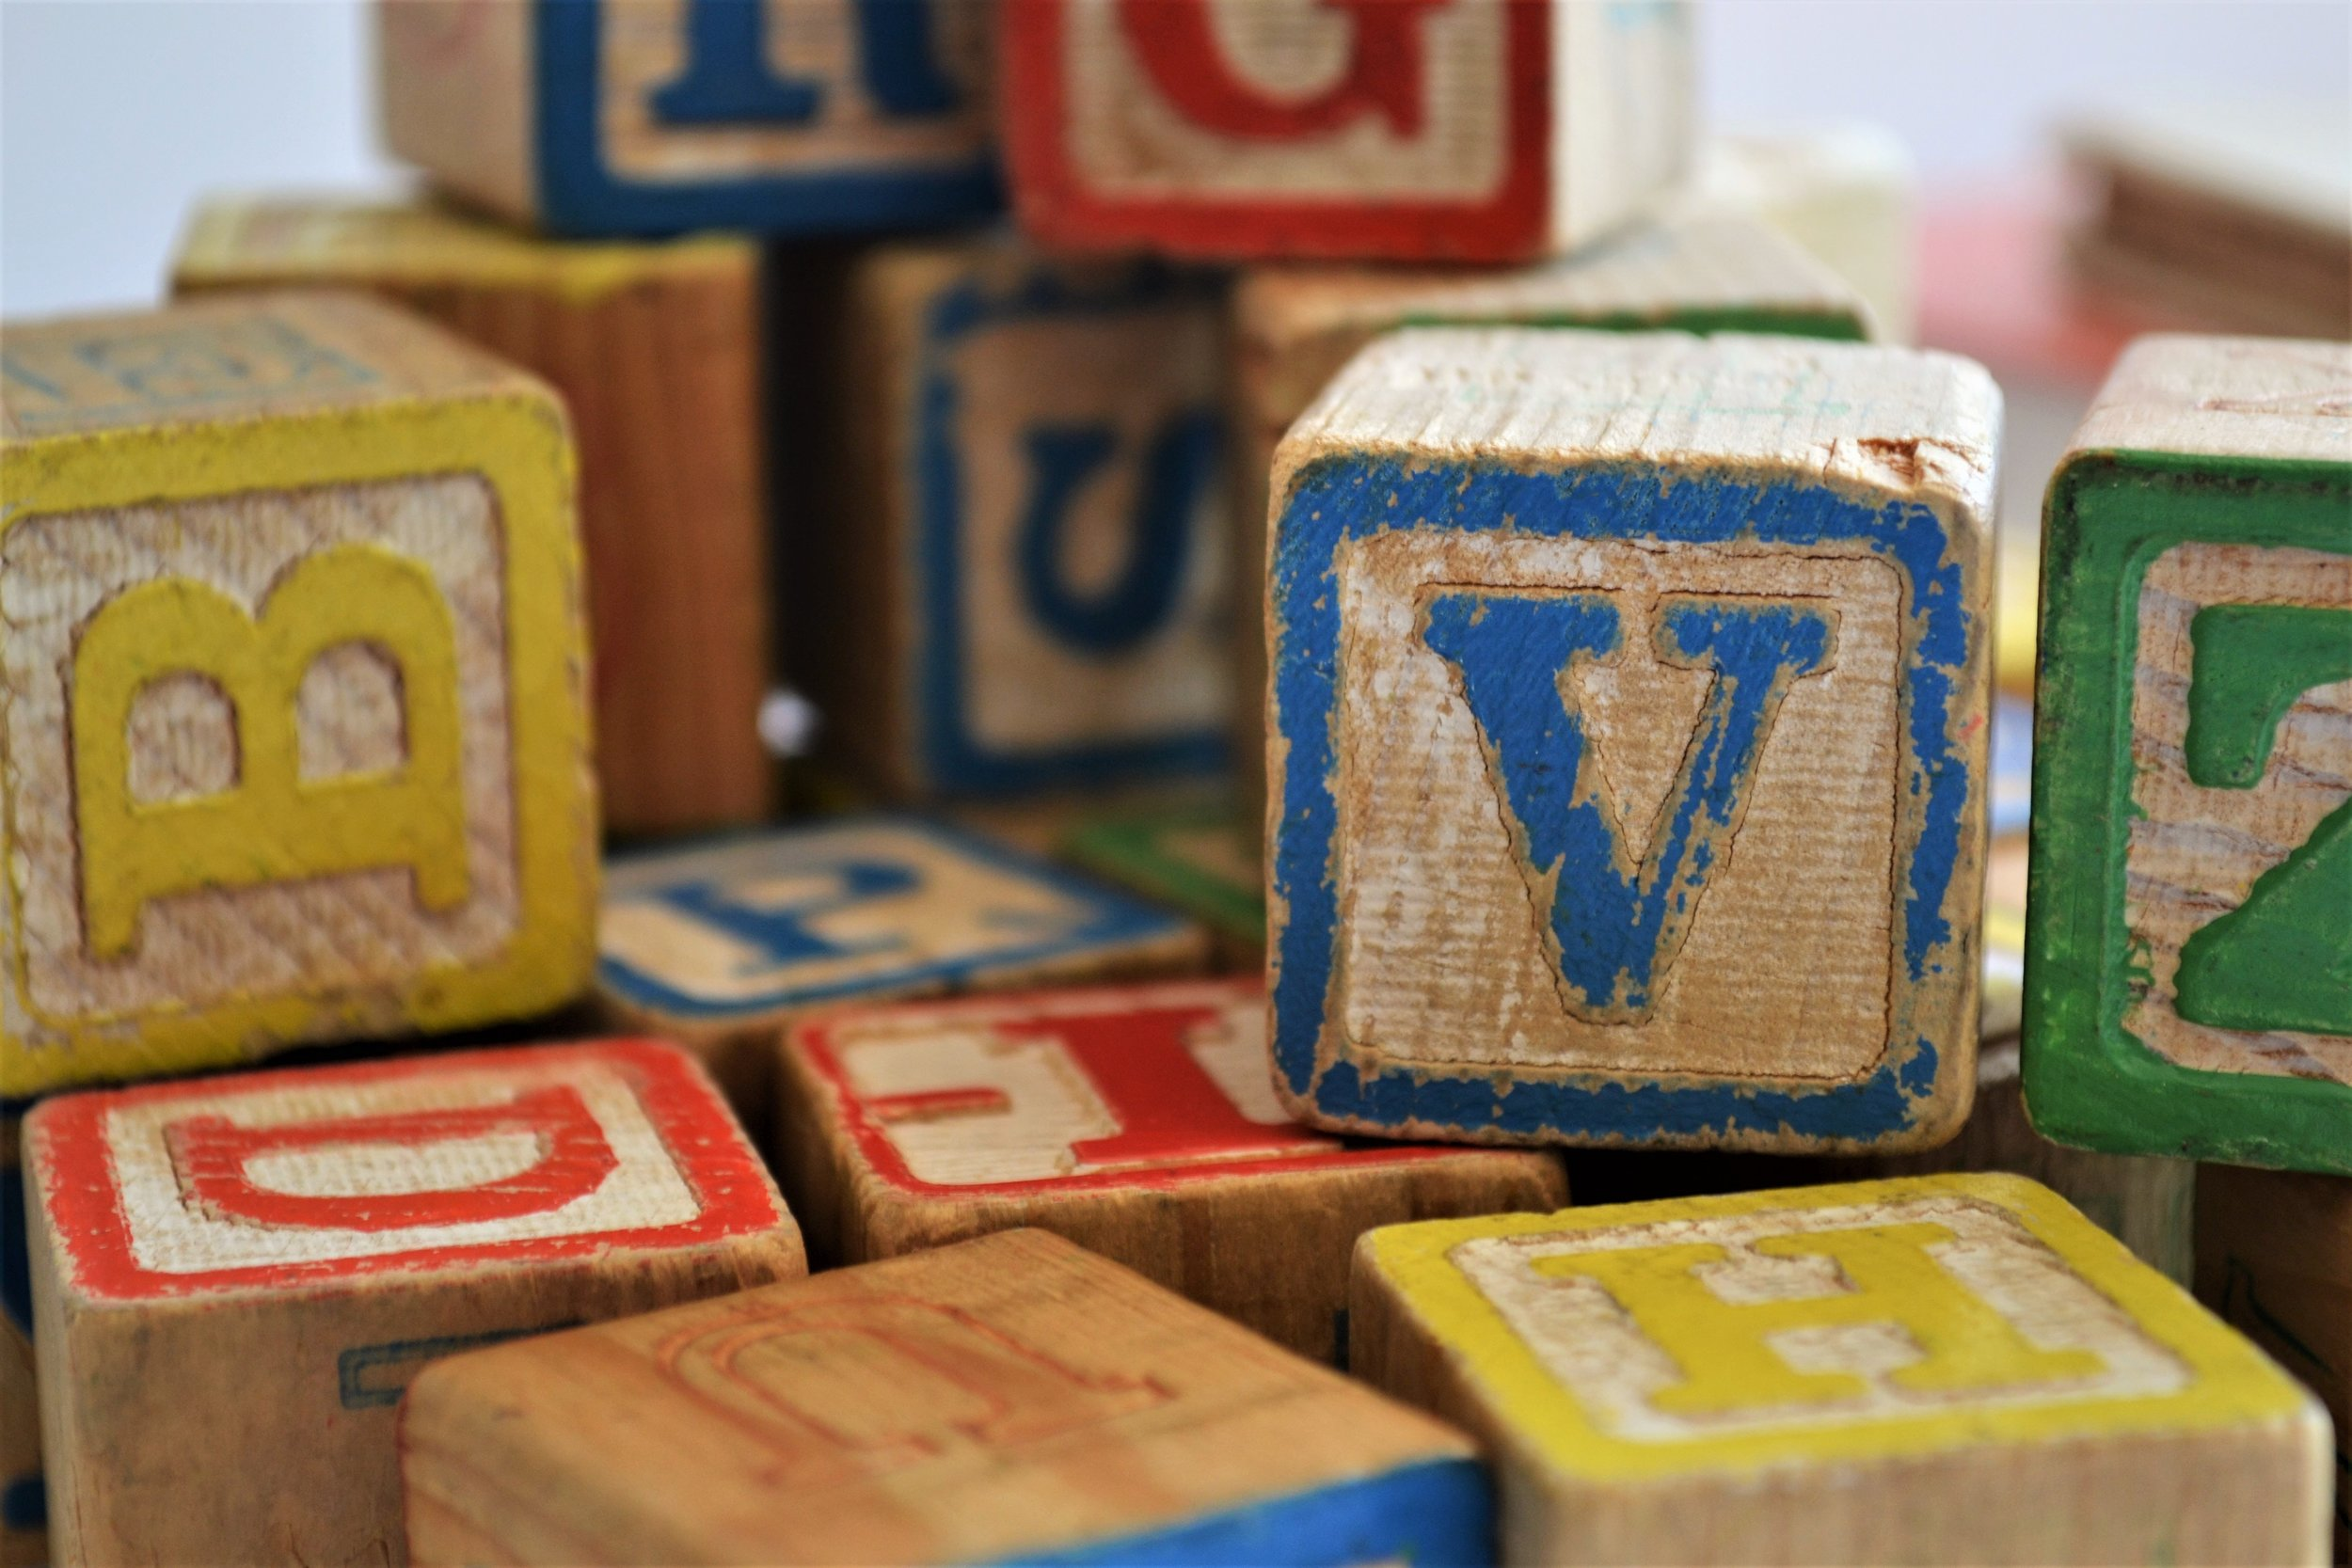 Verbal Behavior Training - We utilize the VB-mapp (Verbal Behavior Milestones assessment and placement program) to assess and plan for a structured ABA program.